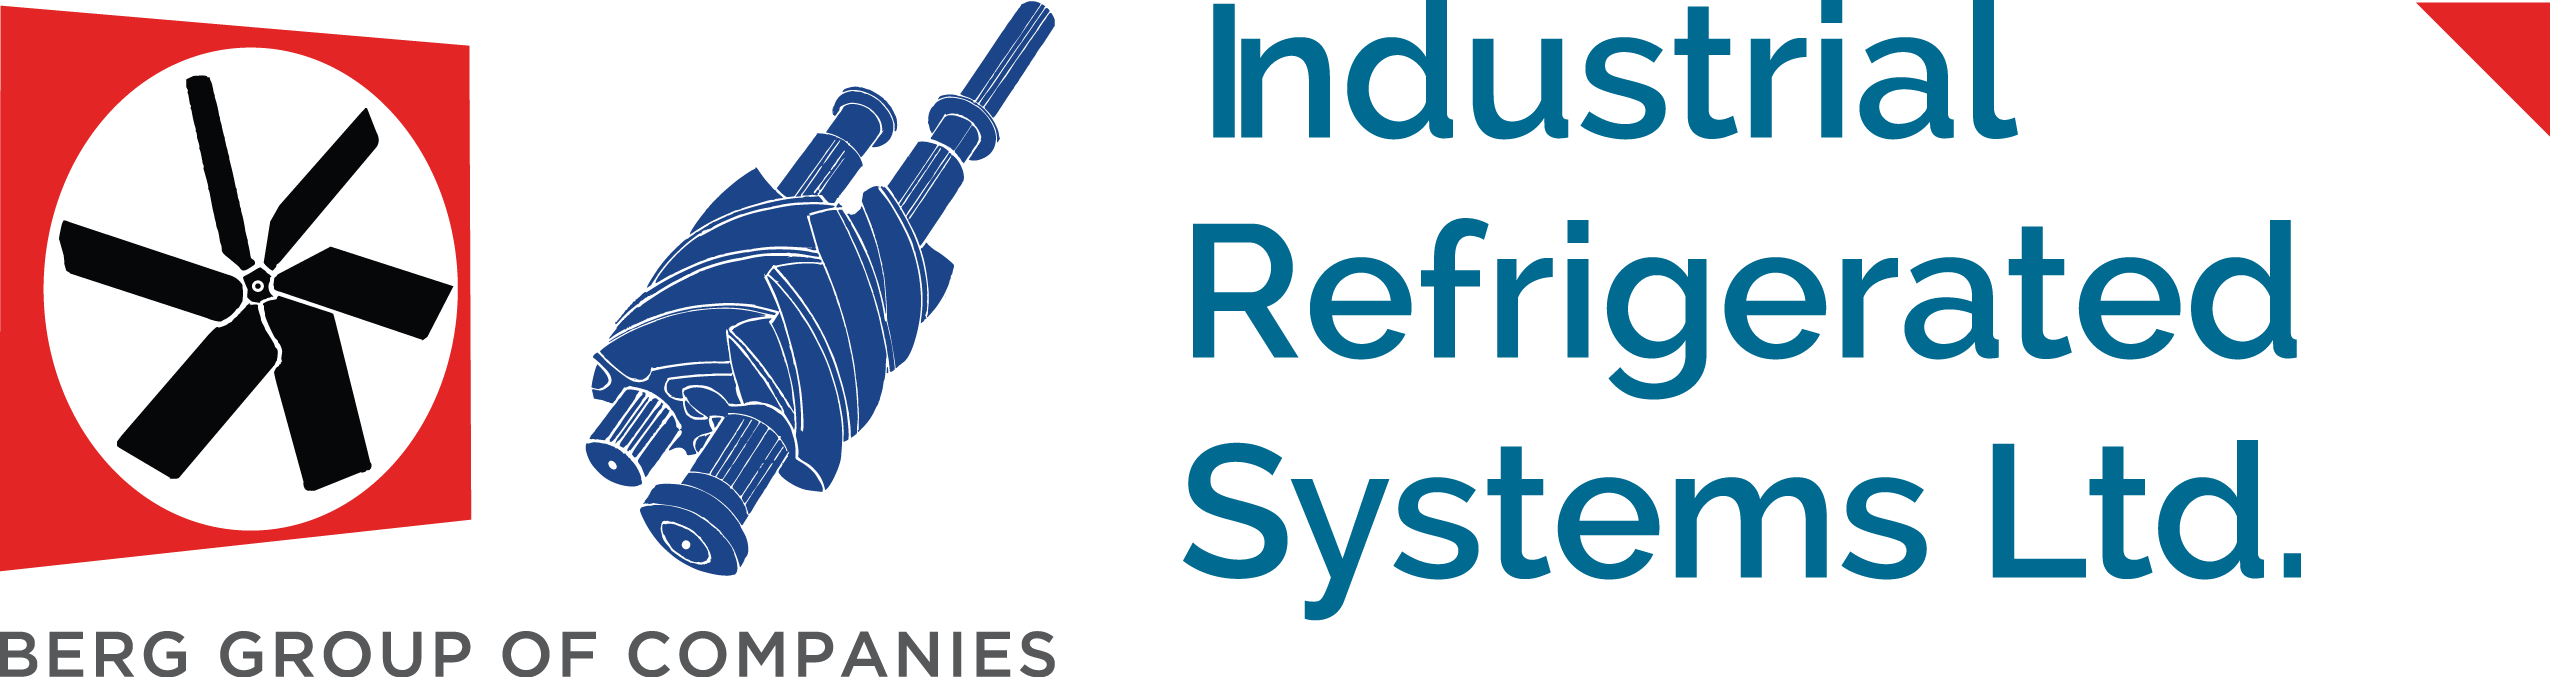 Refrigeration Principles And How A System Works Berg Wiring Diagram Of Industrial Refrigerated Systems Logo